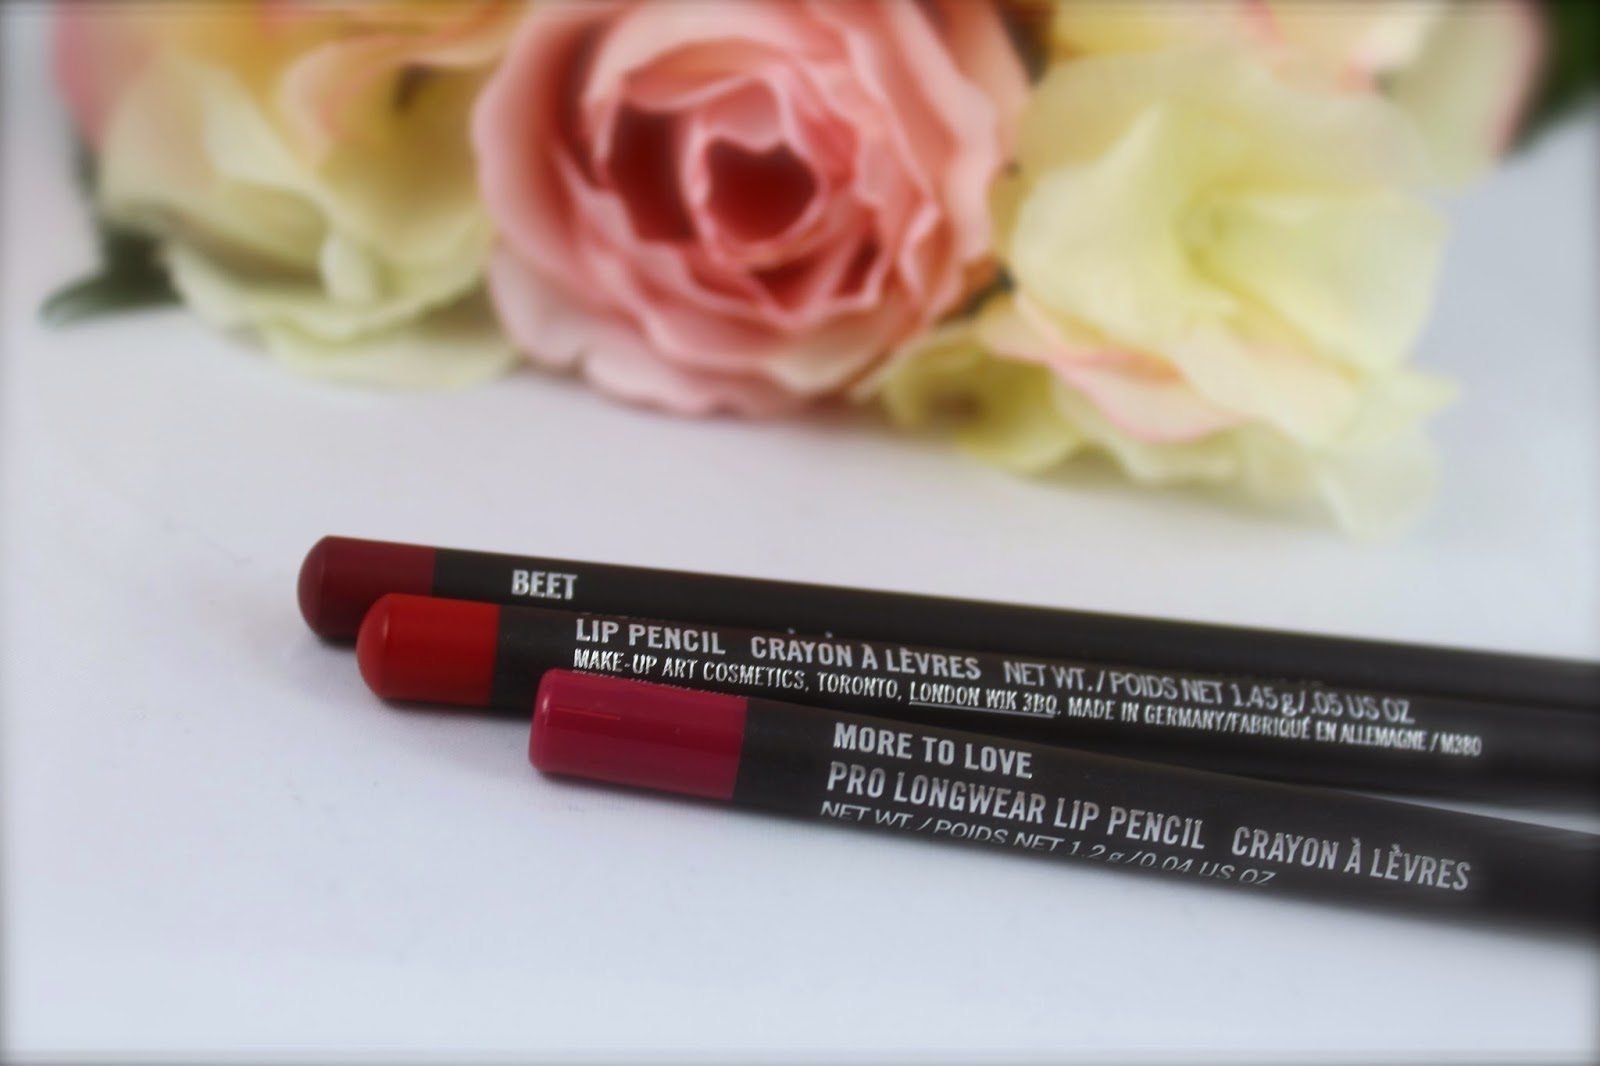 mac lip pencil beet more to love cherry swatches